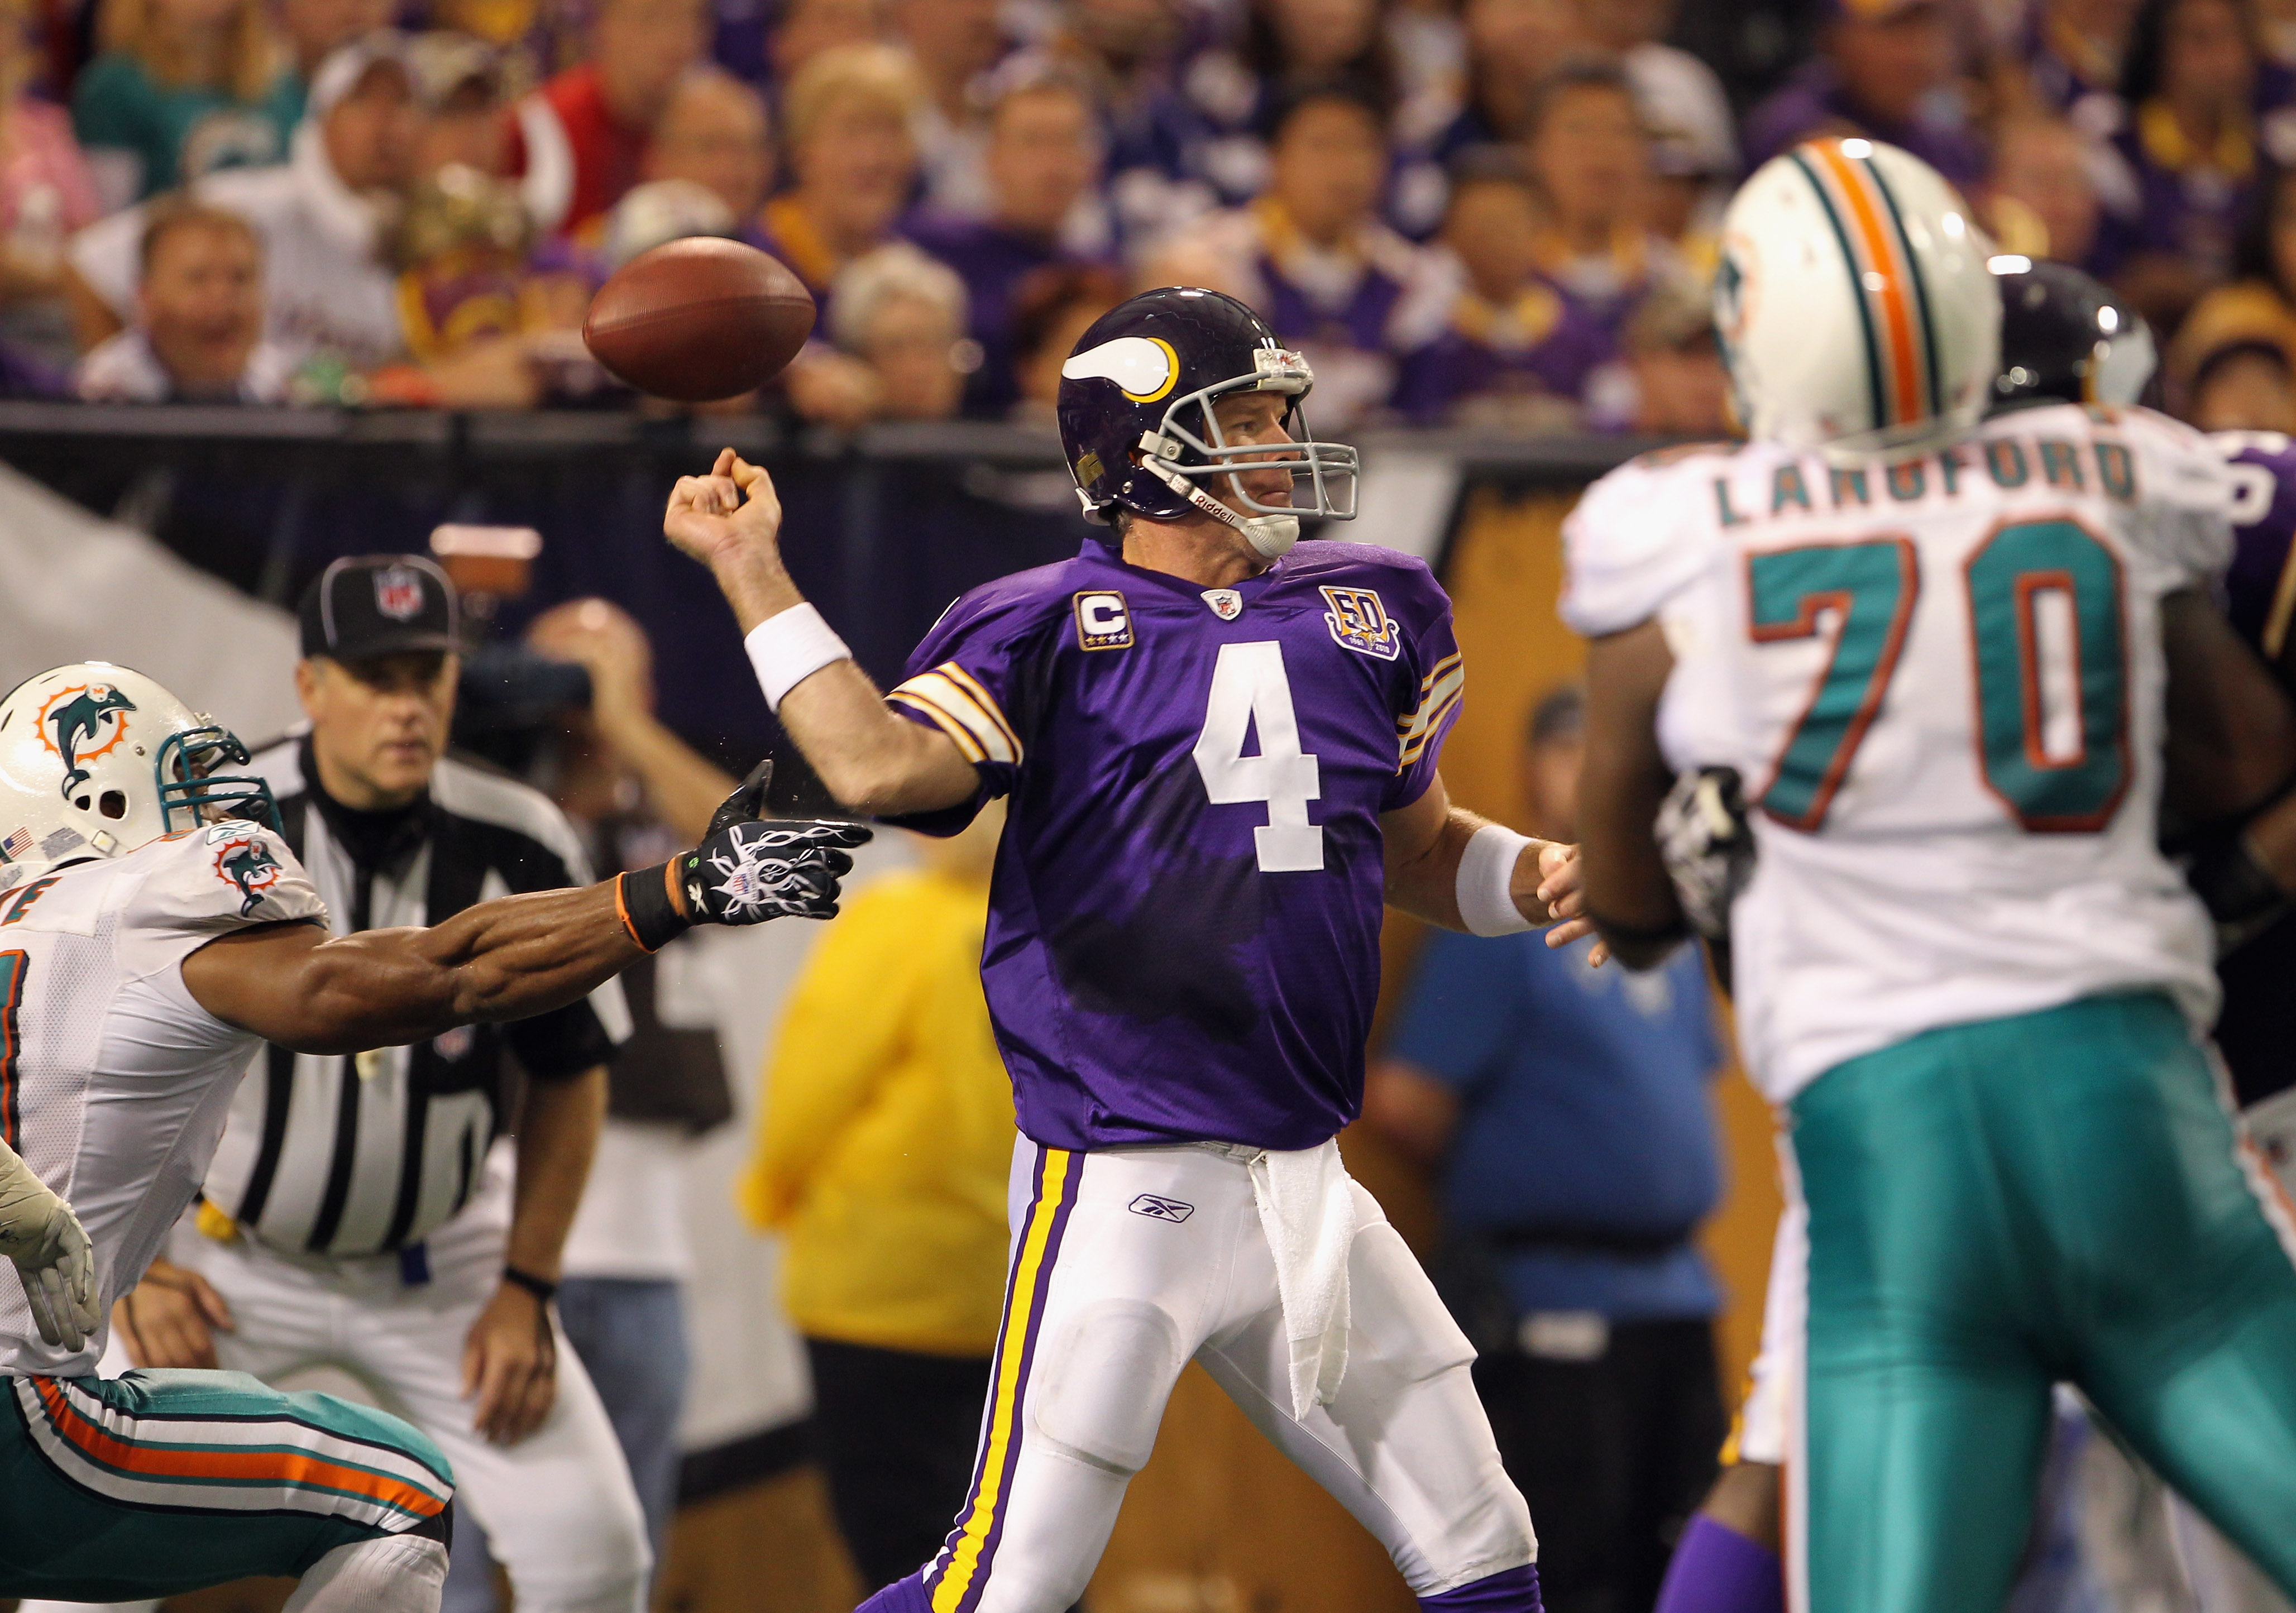 MINNEAPOLIS - SEPTEMBER 19:  Linebacker Cameron Wake #91 of the Miami Dolphins forces the ball loose as quarterback Brett Favre #4 of the Minnesota Vikings drops back to pass during the game on September 19, 2010 at Hubert H. Humphrey Metrodome in Minneap